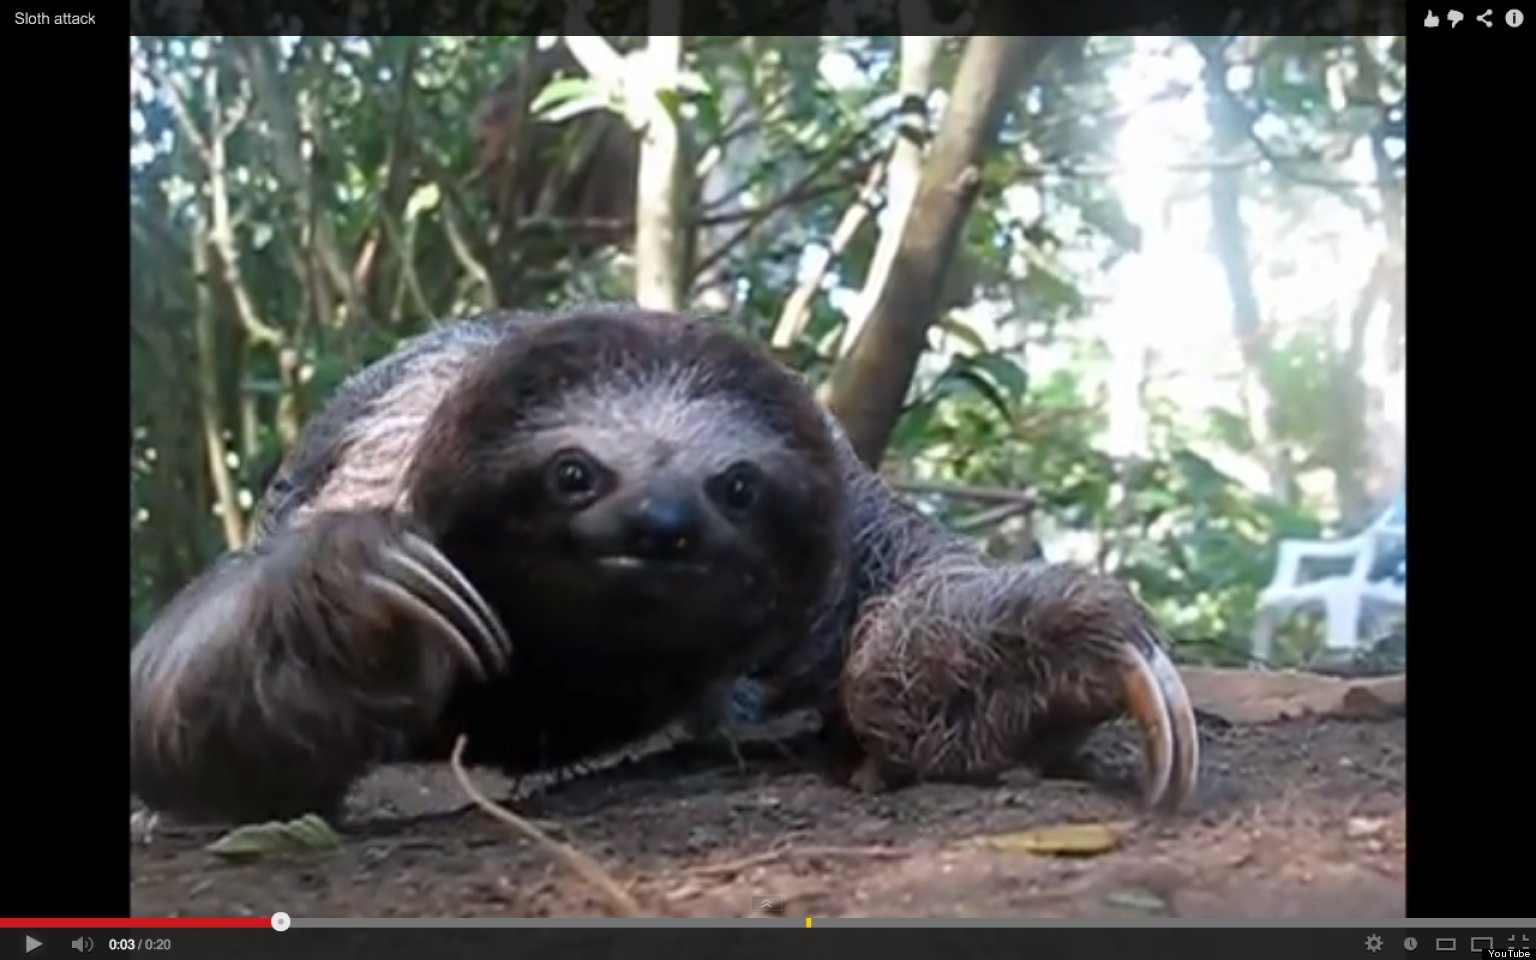 sloth  u0026 39 attack u0026 39  video will be happiest 20 seconds of your day  guaranteed